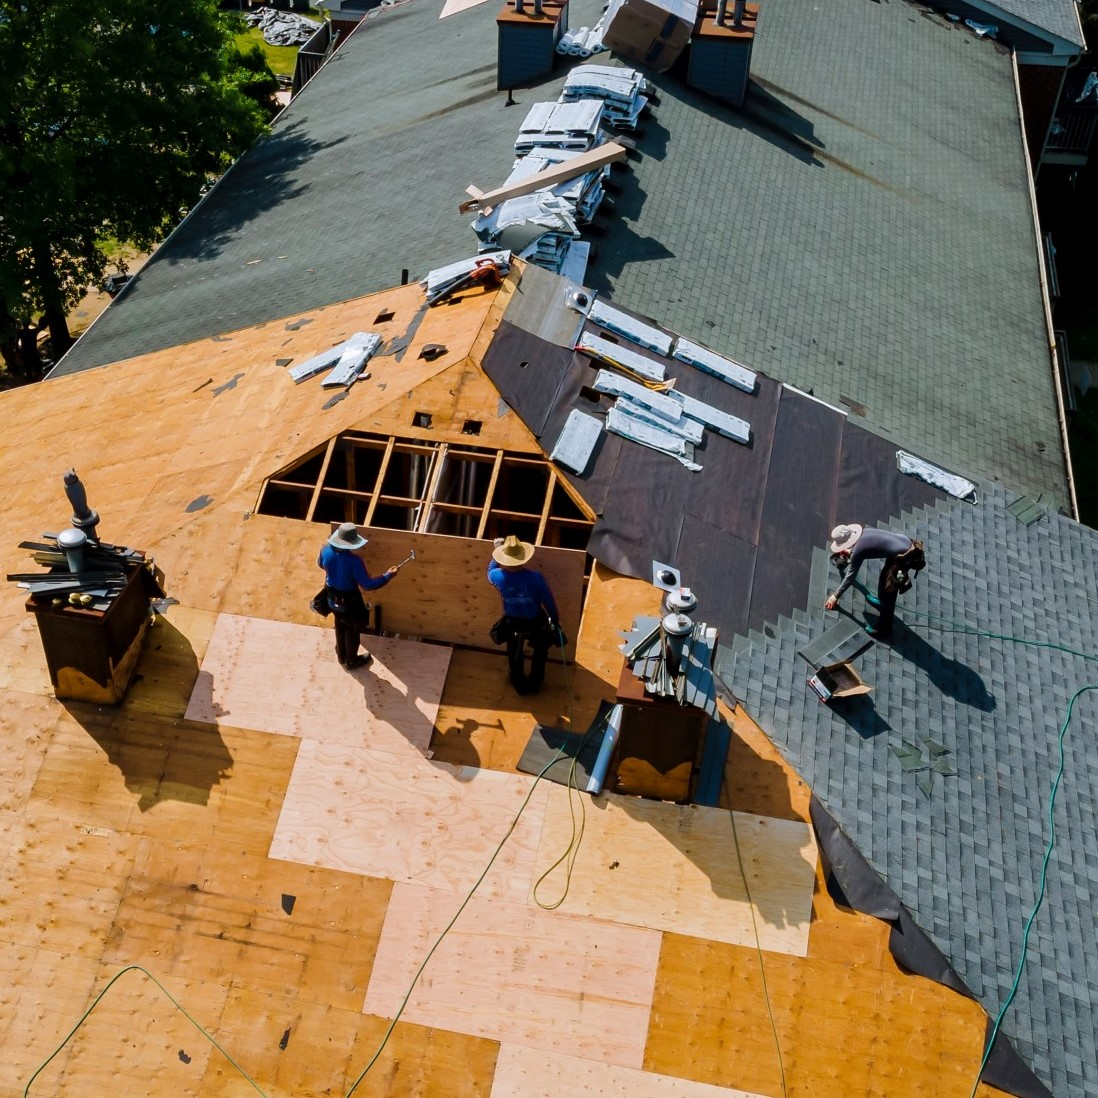 construction-worker-on-a-renovation-roof-the-house-installed-new-shingles_t20_xXRlPX